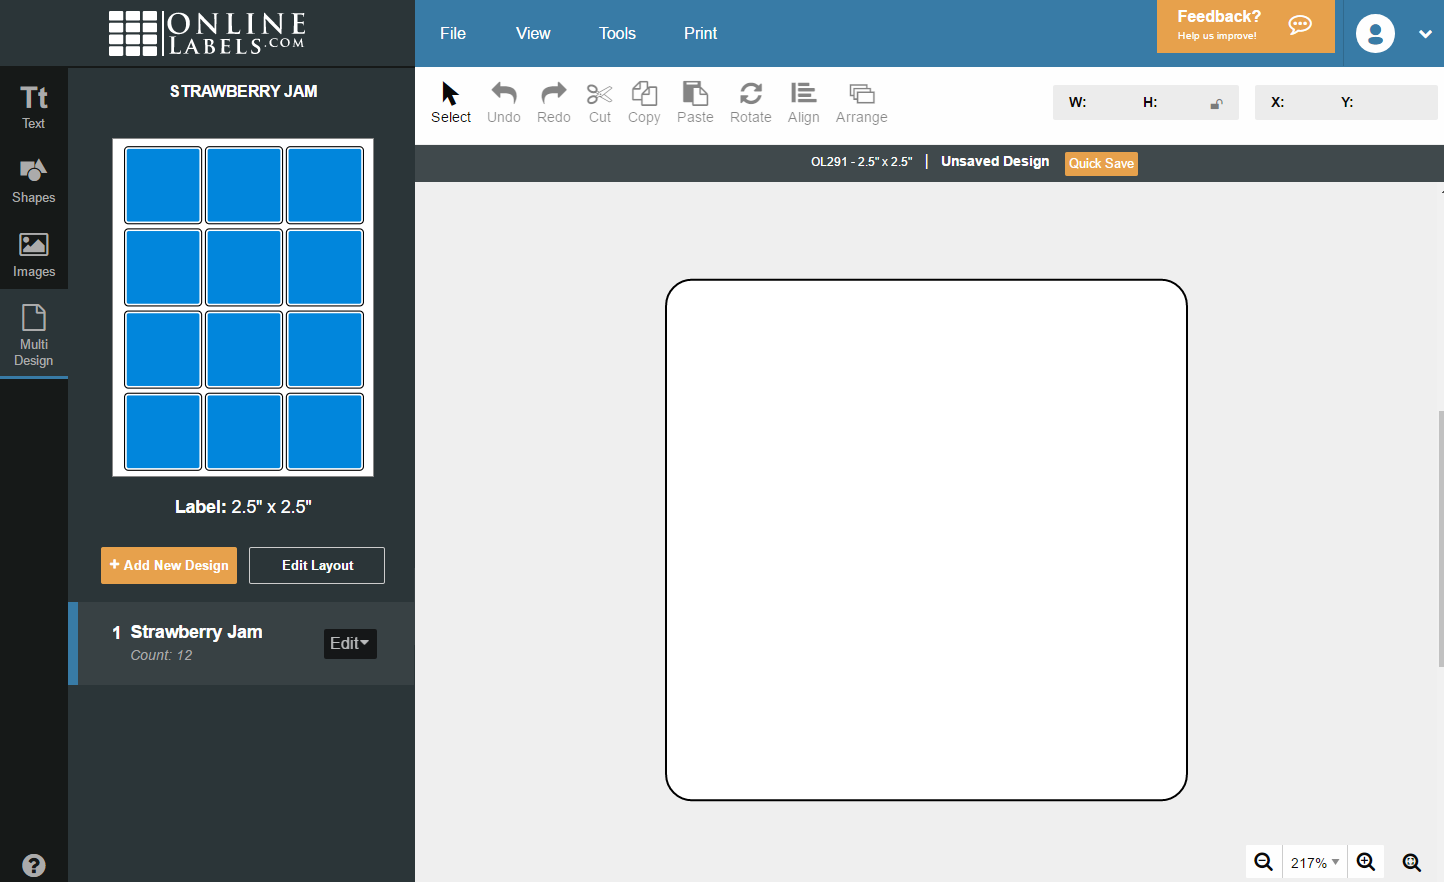 Starting a new design in page view